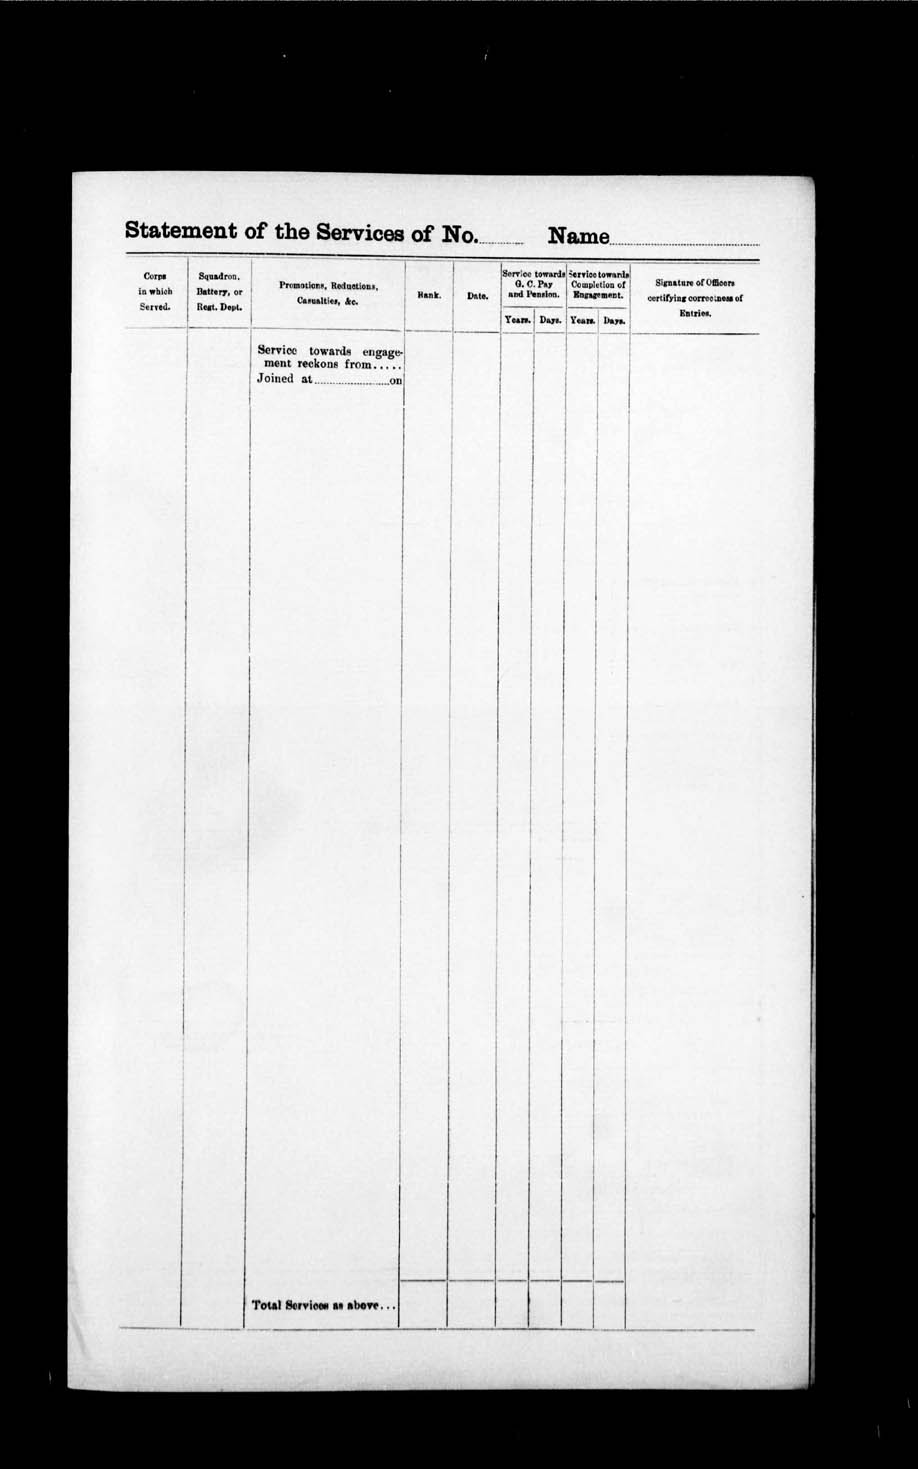 Digitized page of Boer War for Image No.: e002192892